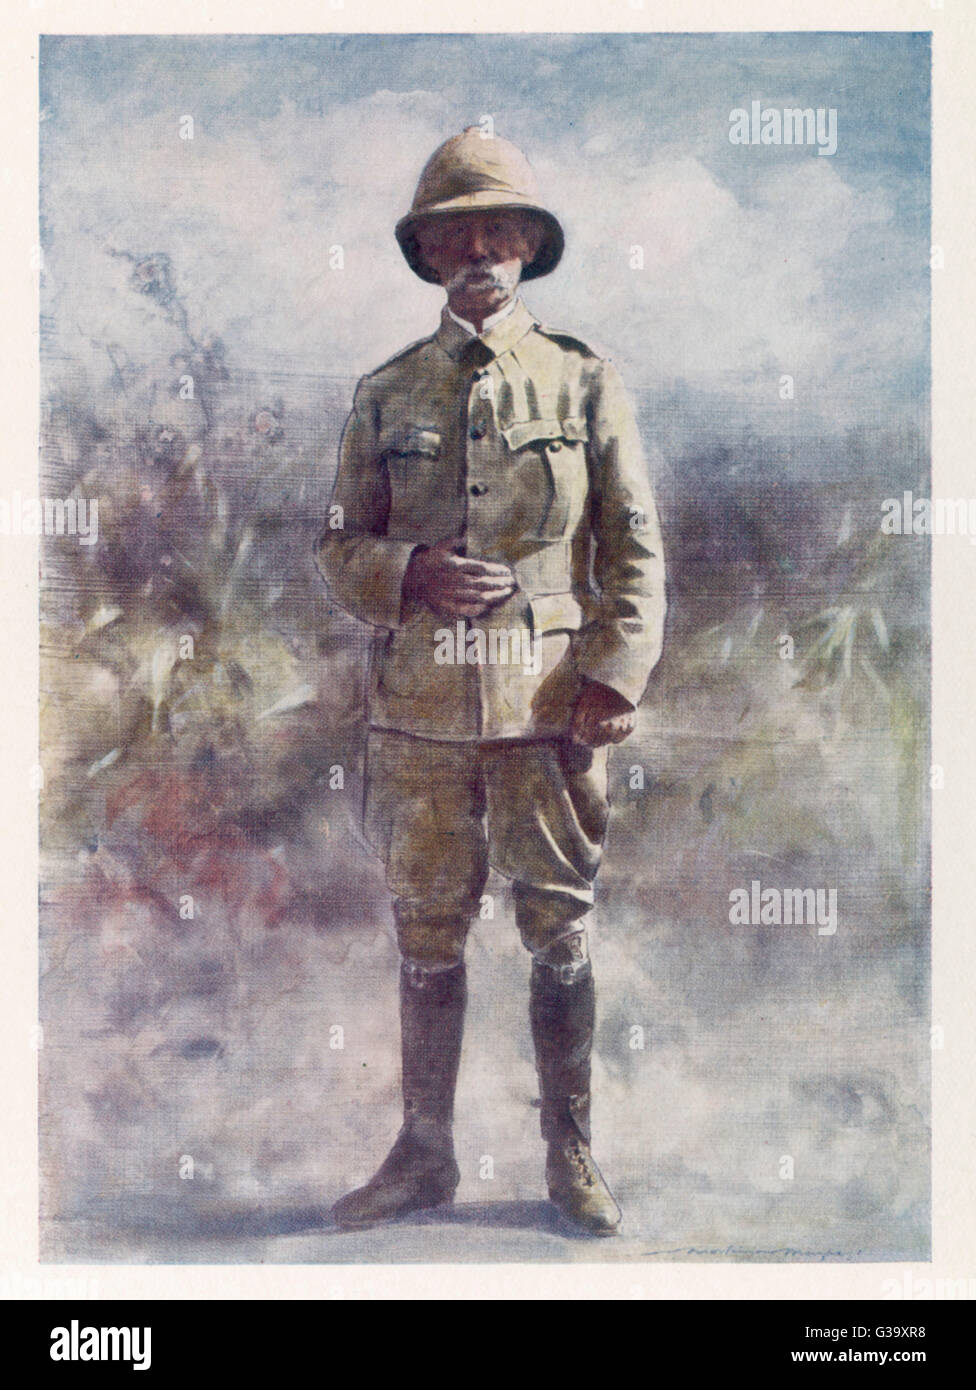 FREDERICK SLEIGH  1st EARL ROBERTS  British soldier watching  the Battle of Osfontein  during the Boer War     Date: - Stock Image